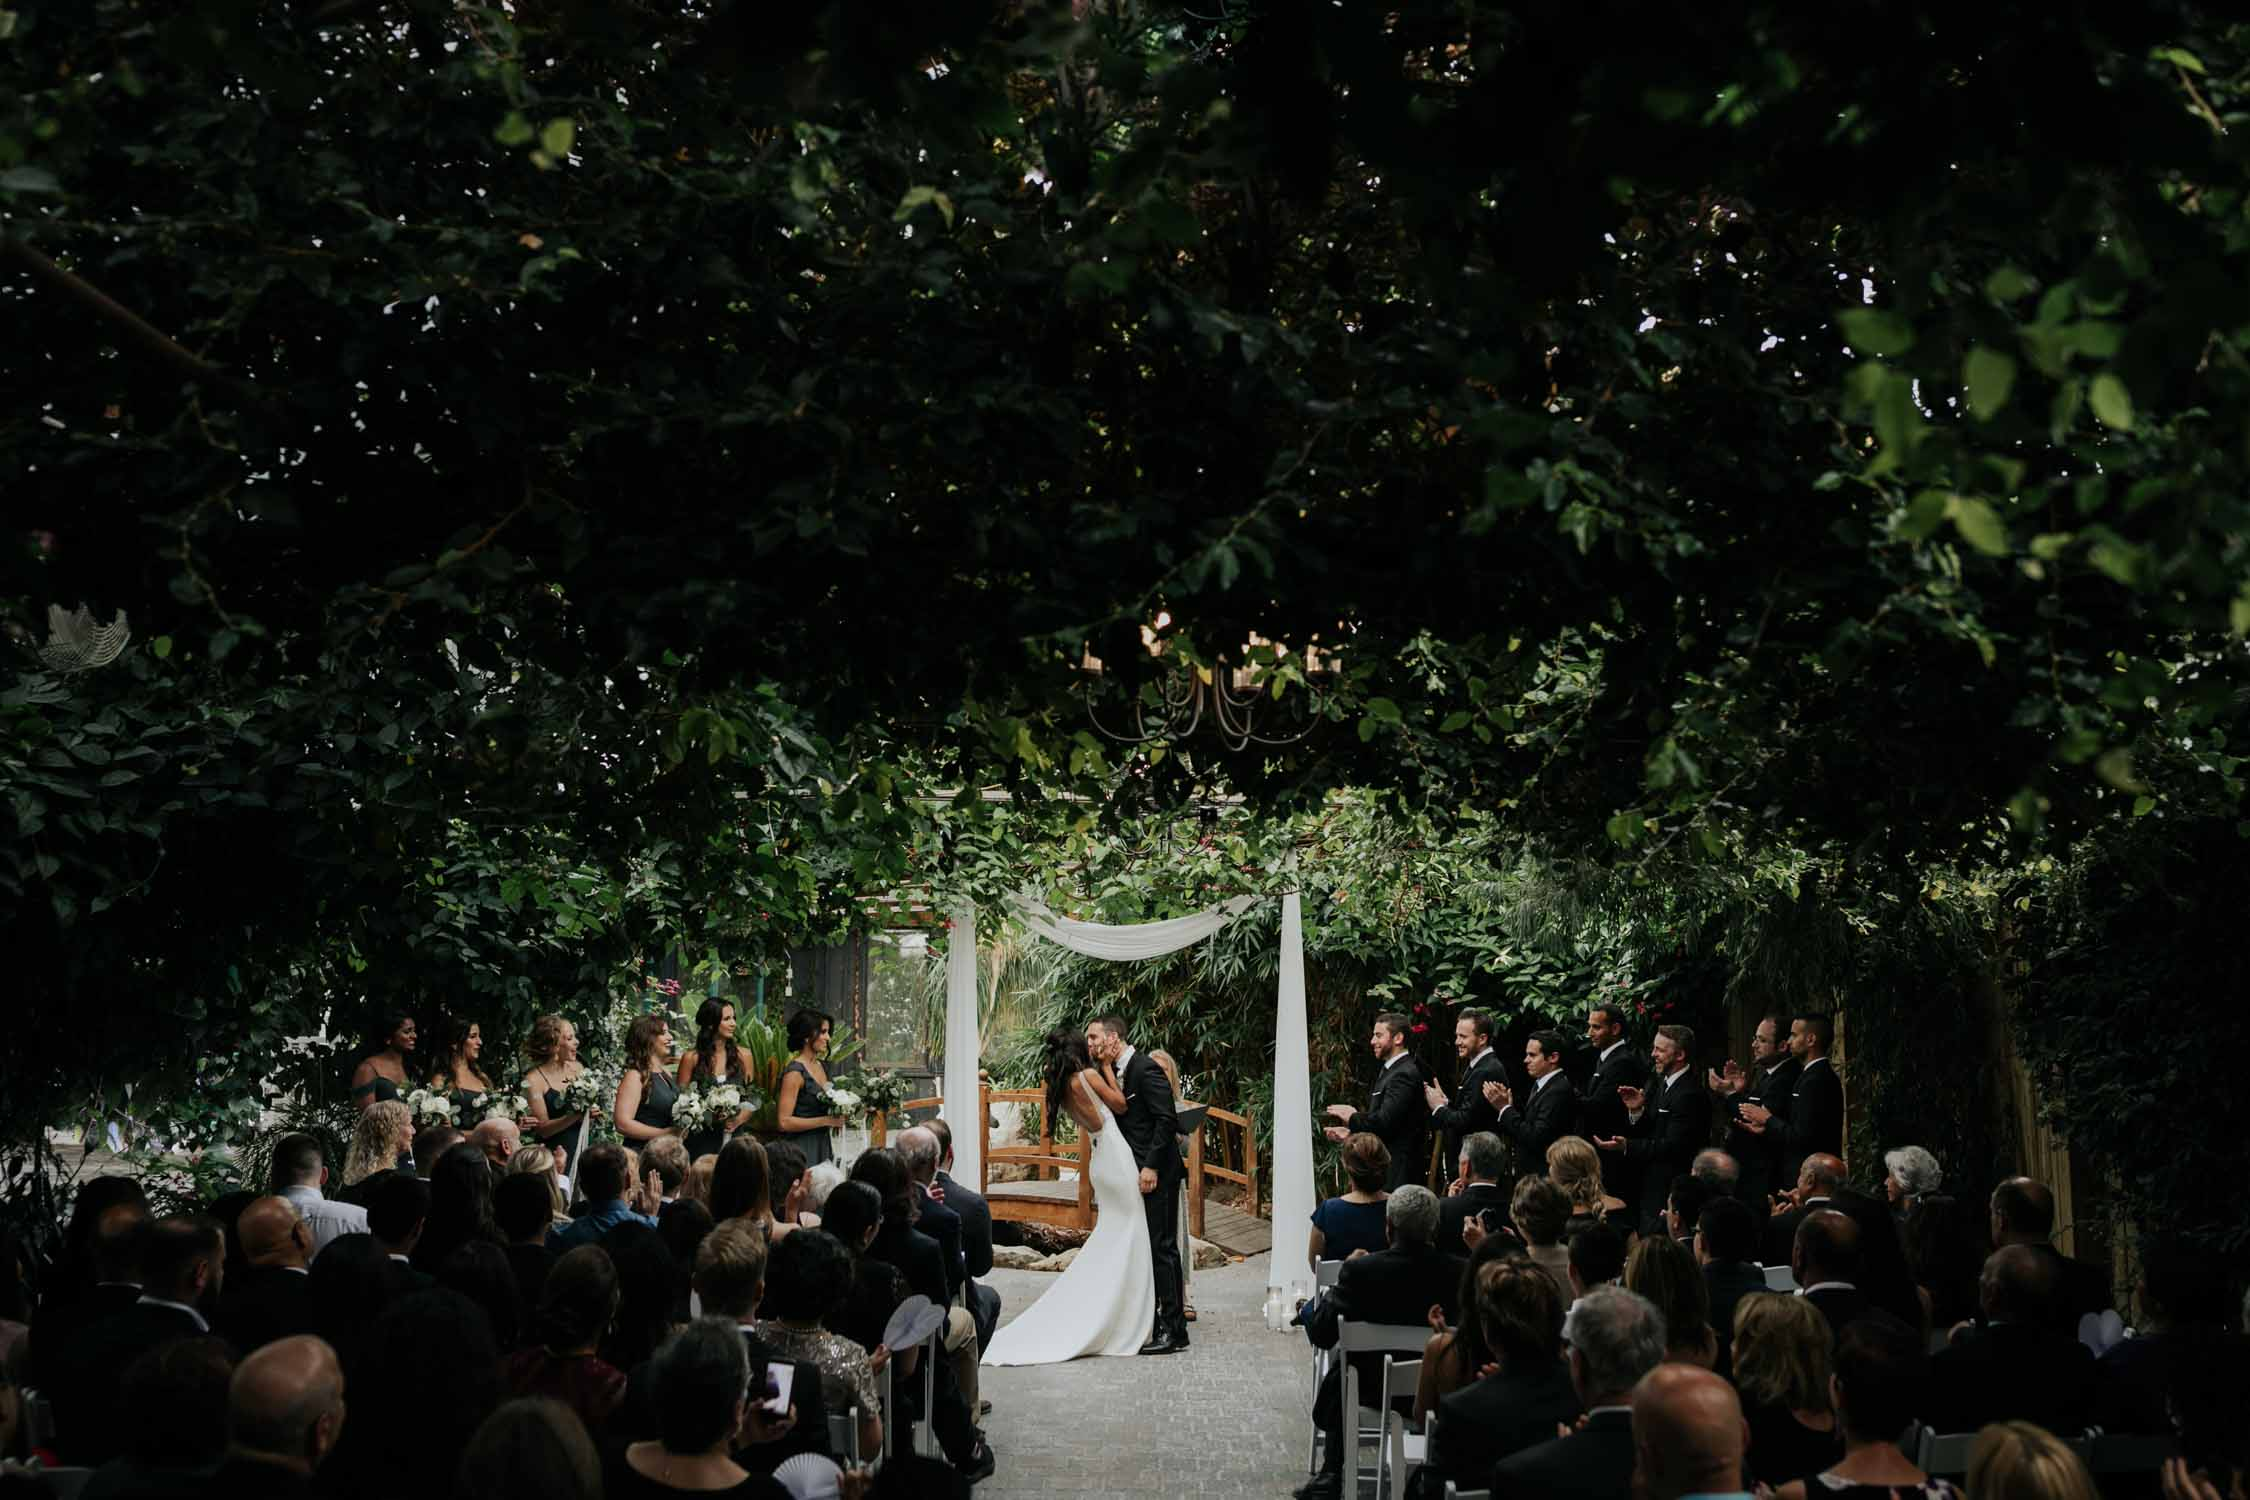 First kiss at Madsen's Greenhouse wedding venue in Newmarket close to Toronto